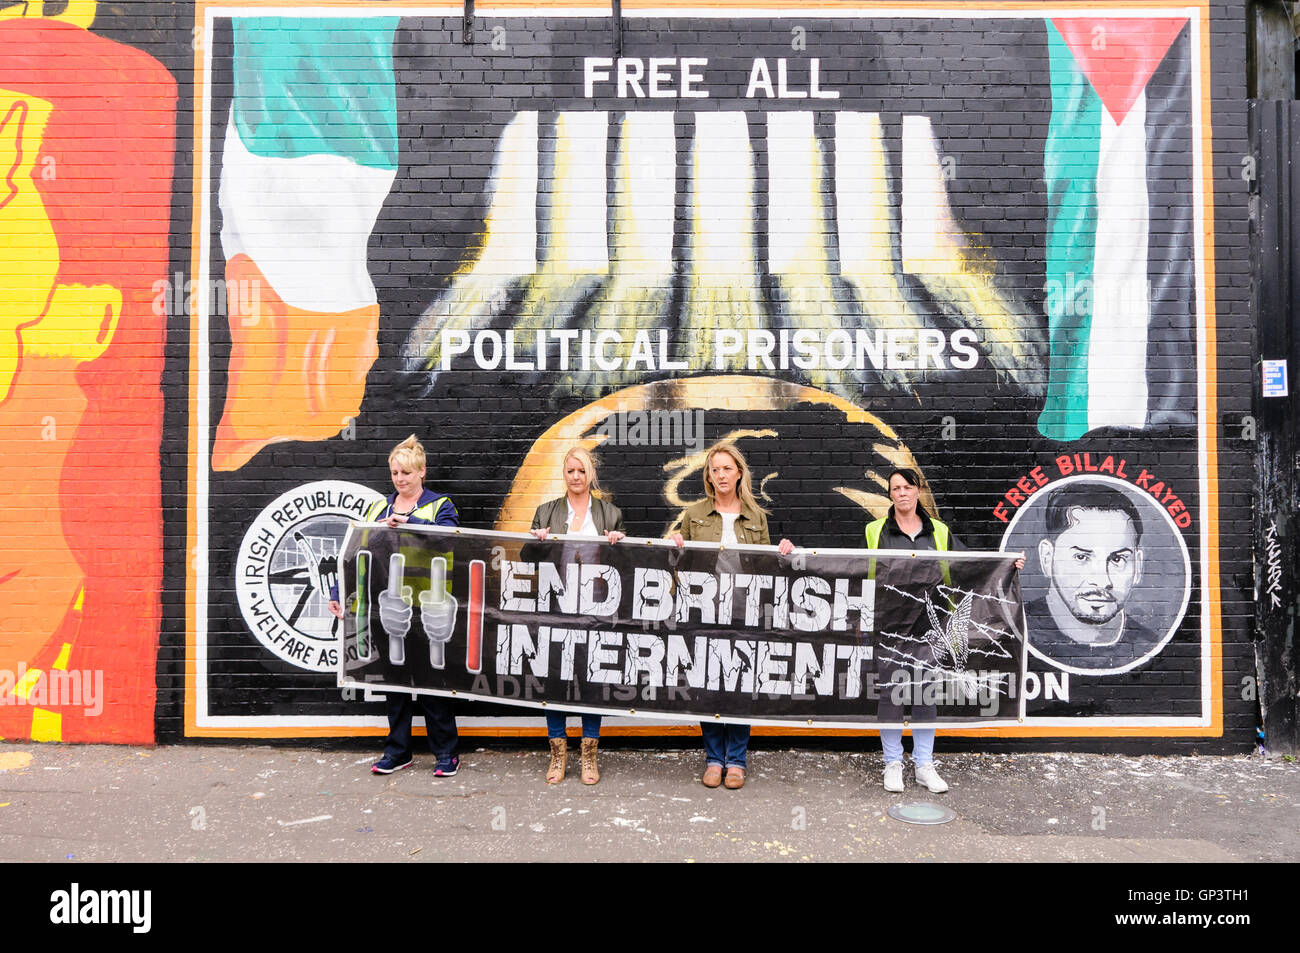 Four women hold a banner calling for the end of British Internment, while standing beside the IRPWA mural calling Stock Photo